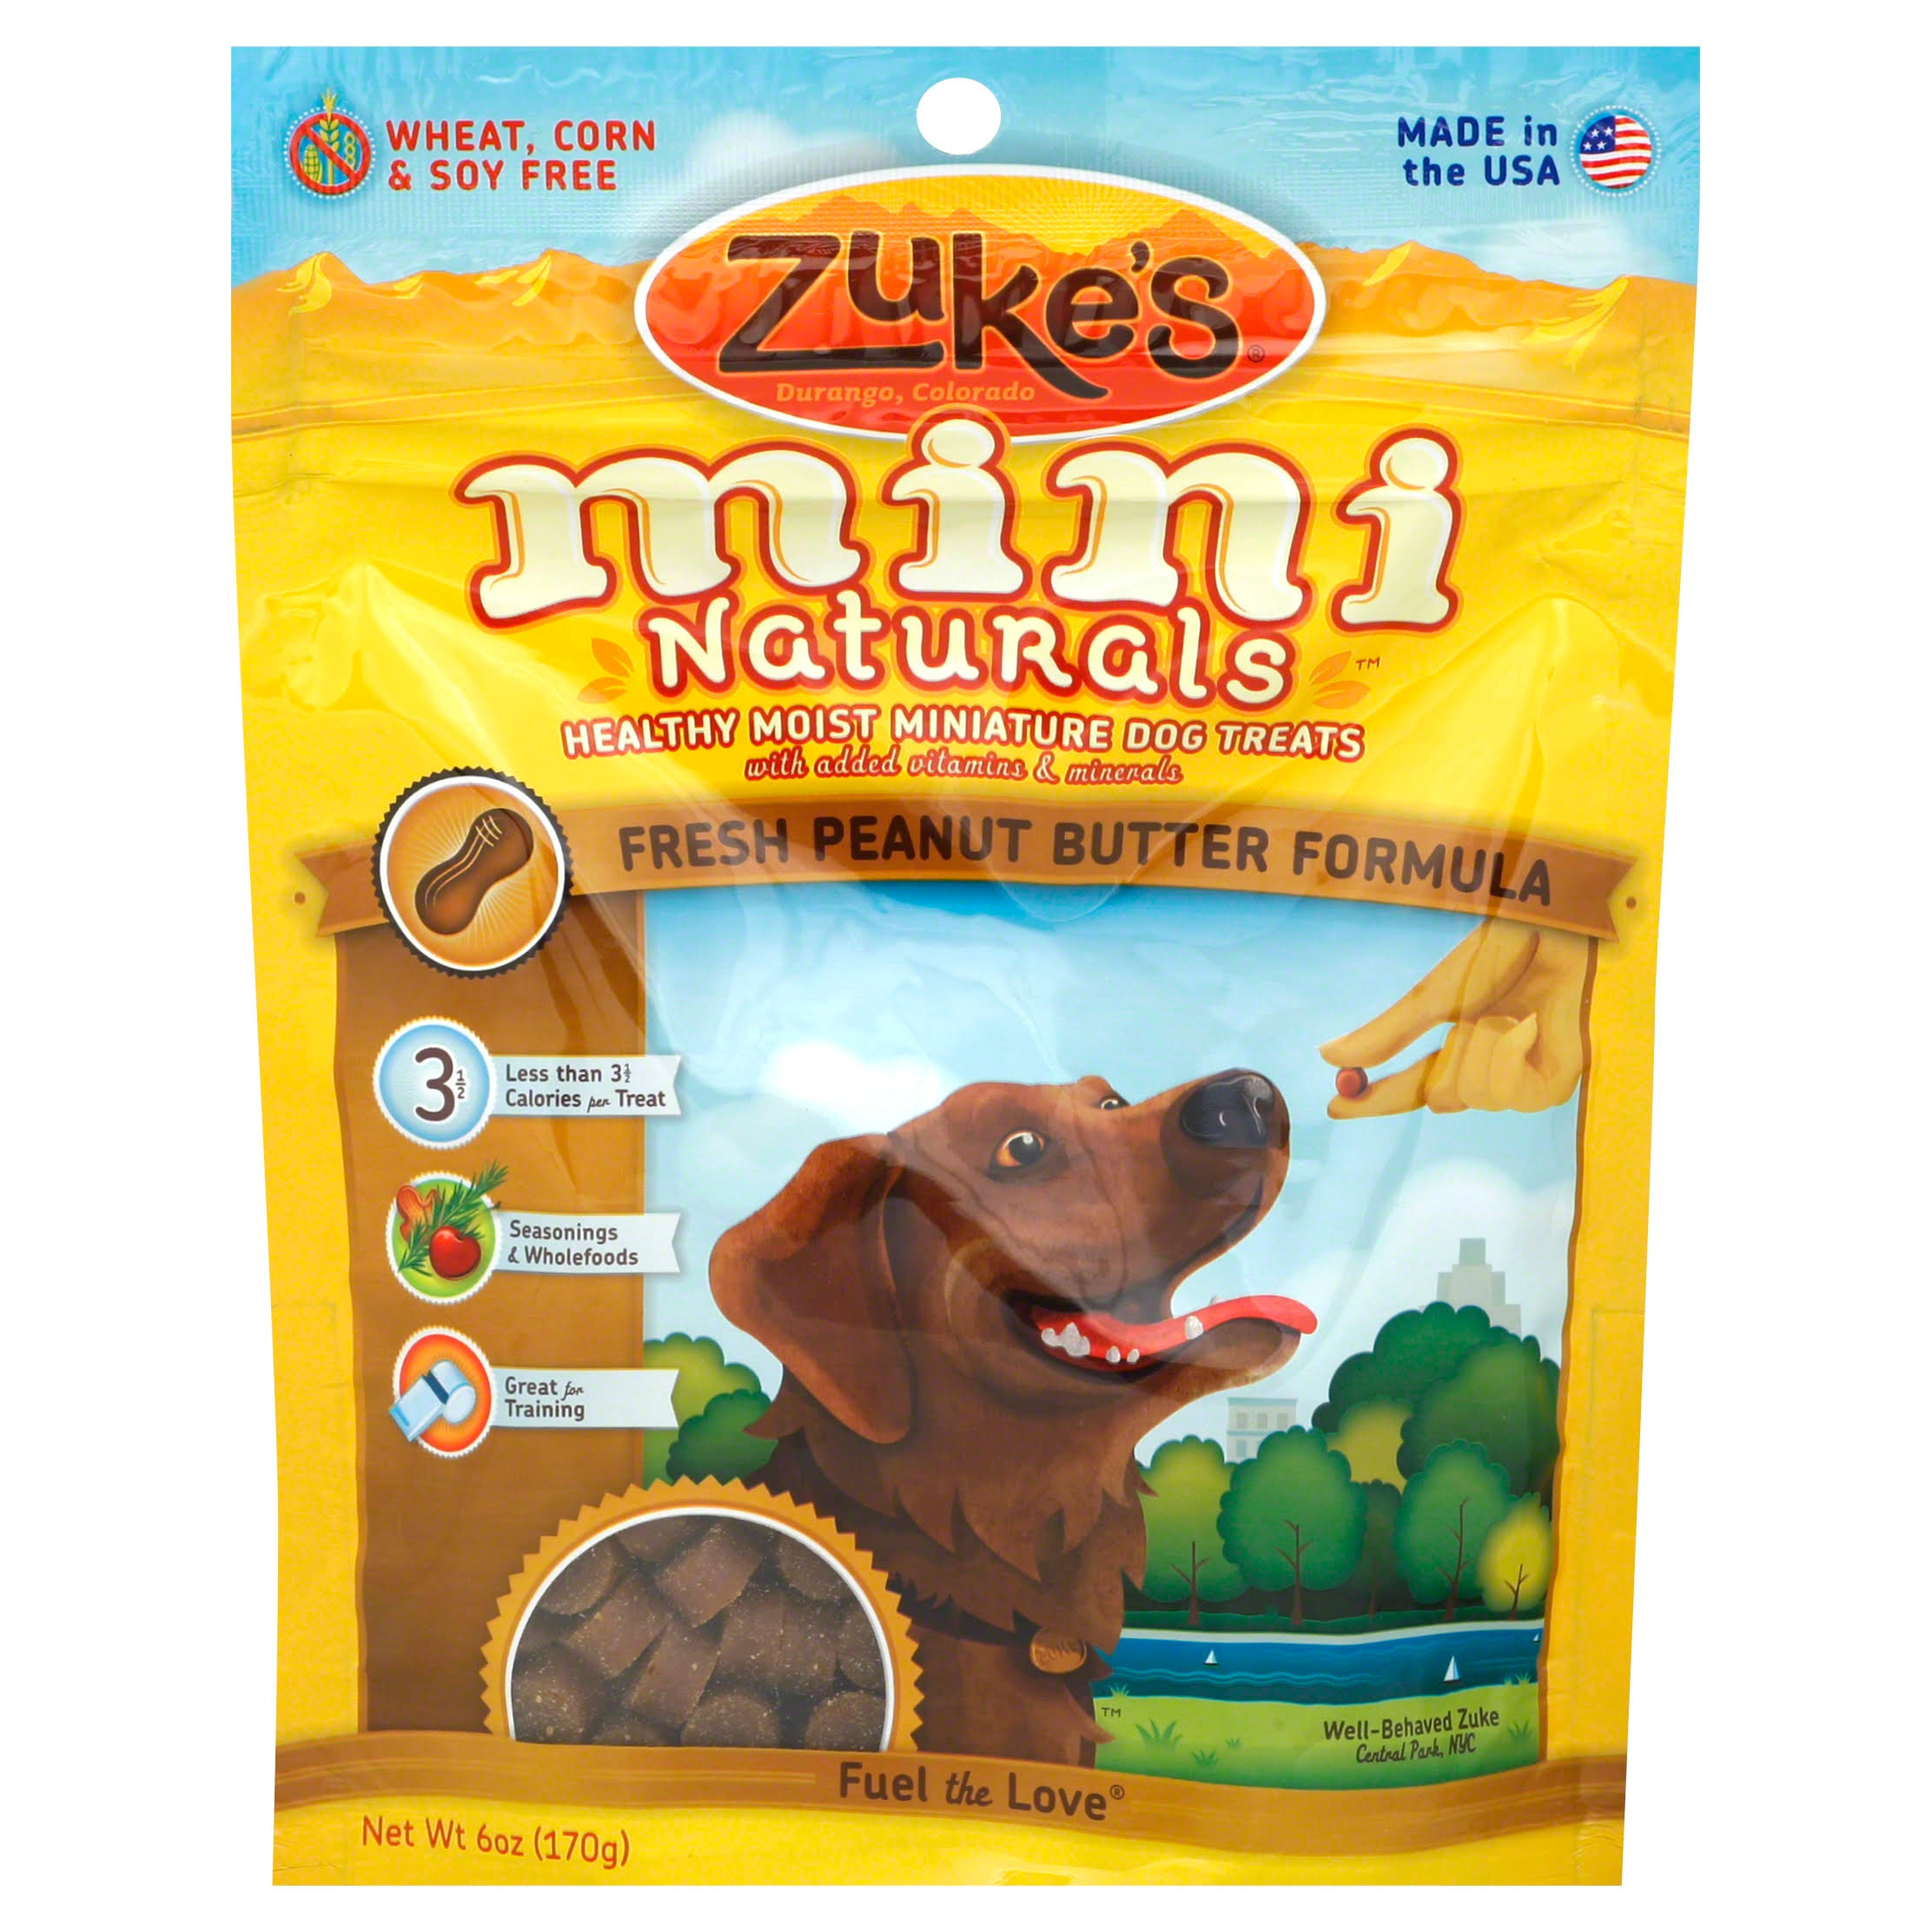 Zuke's Mini Naturals Dog Treats - Peanut Butter Formula